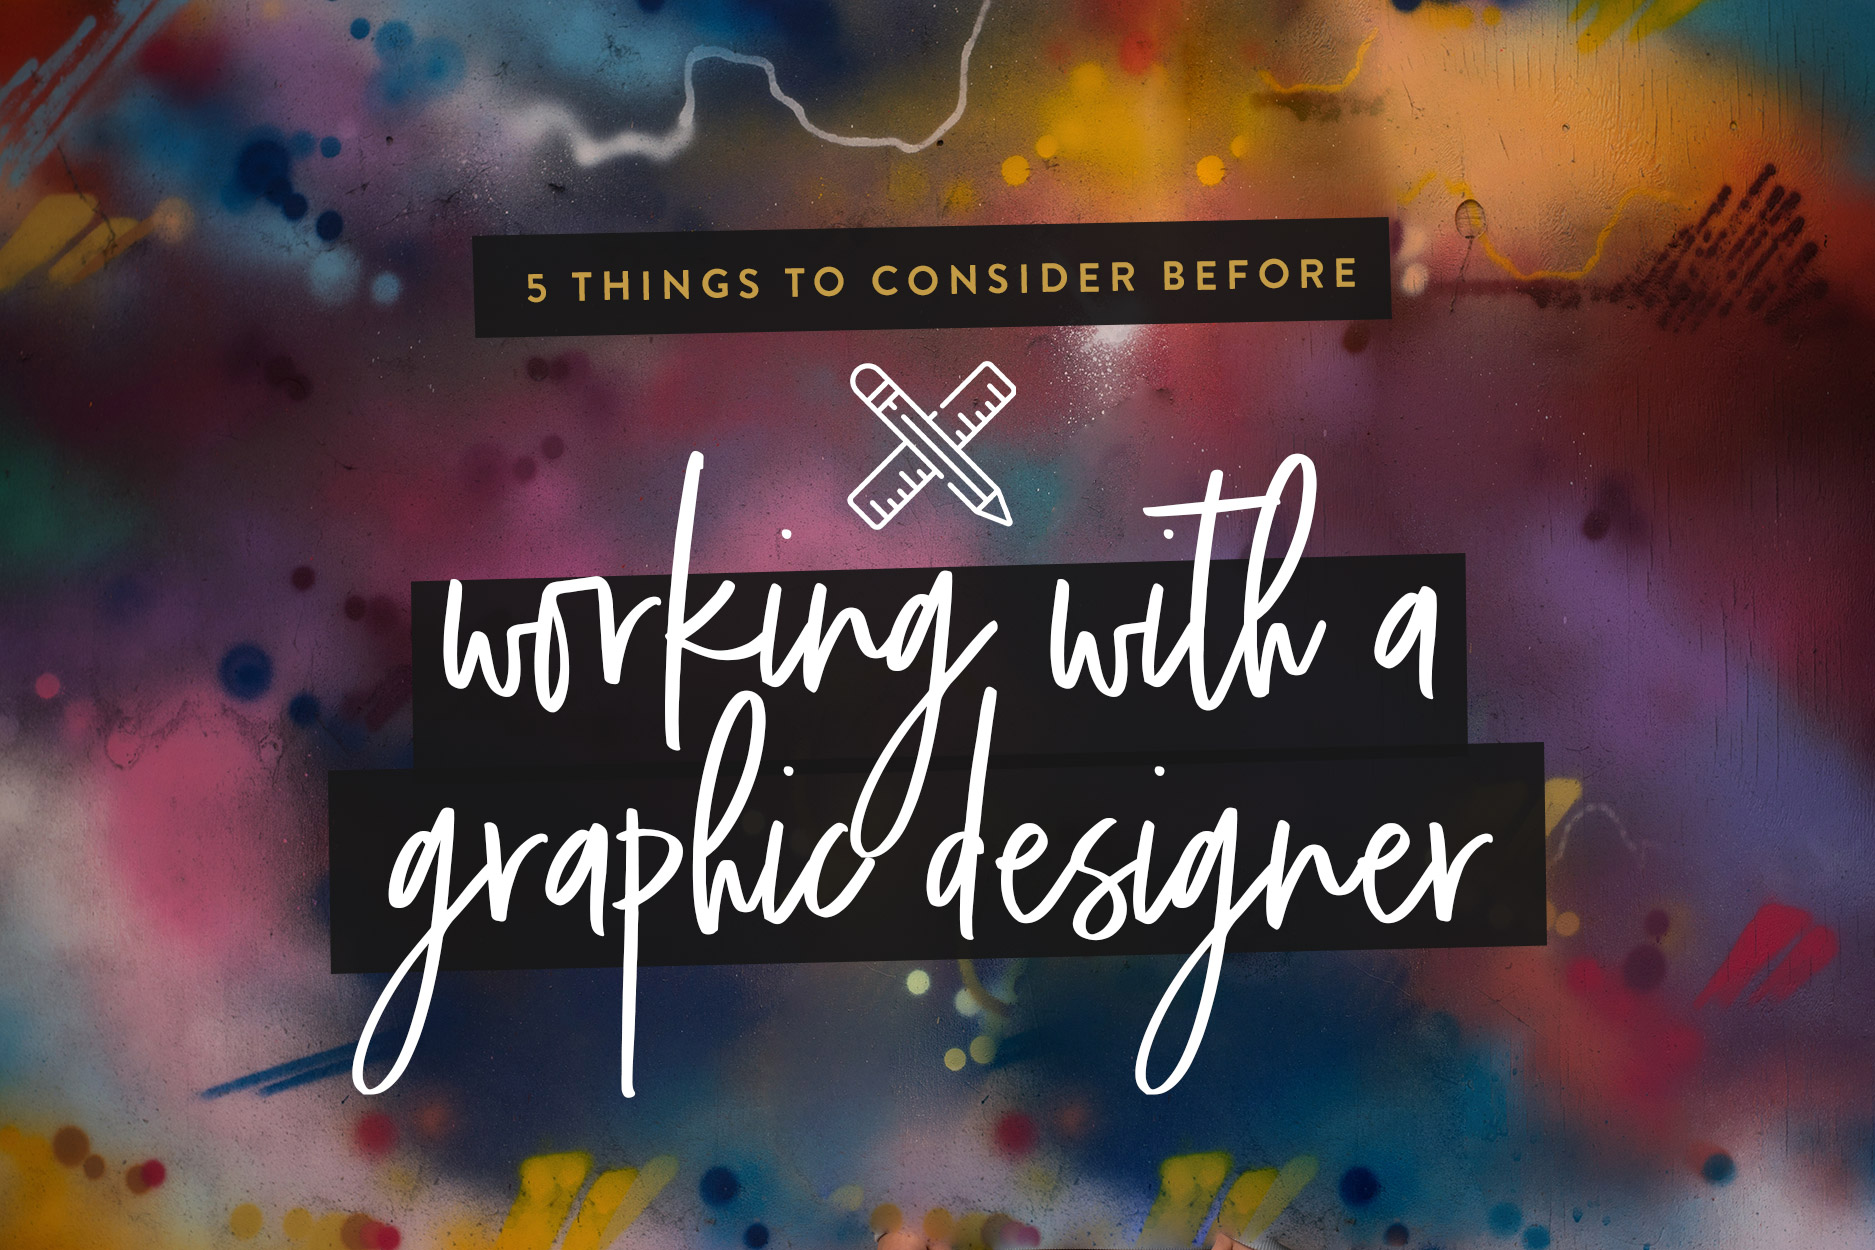 5 things you should do before working with a graphic designer